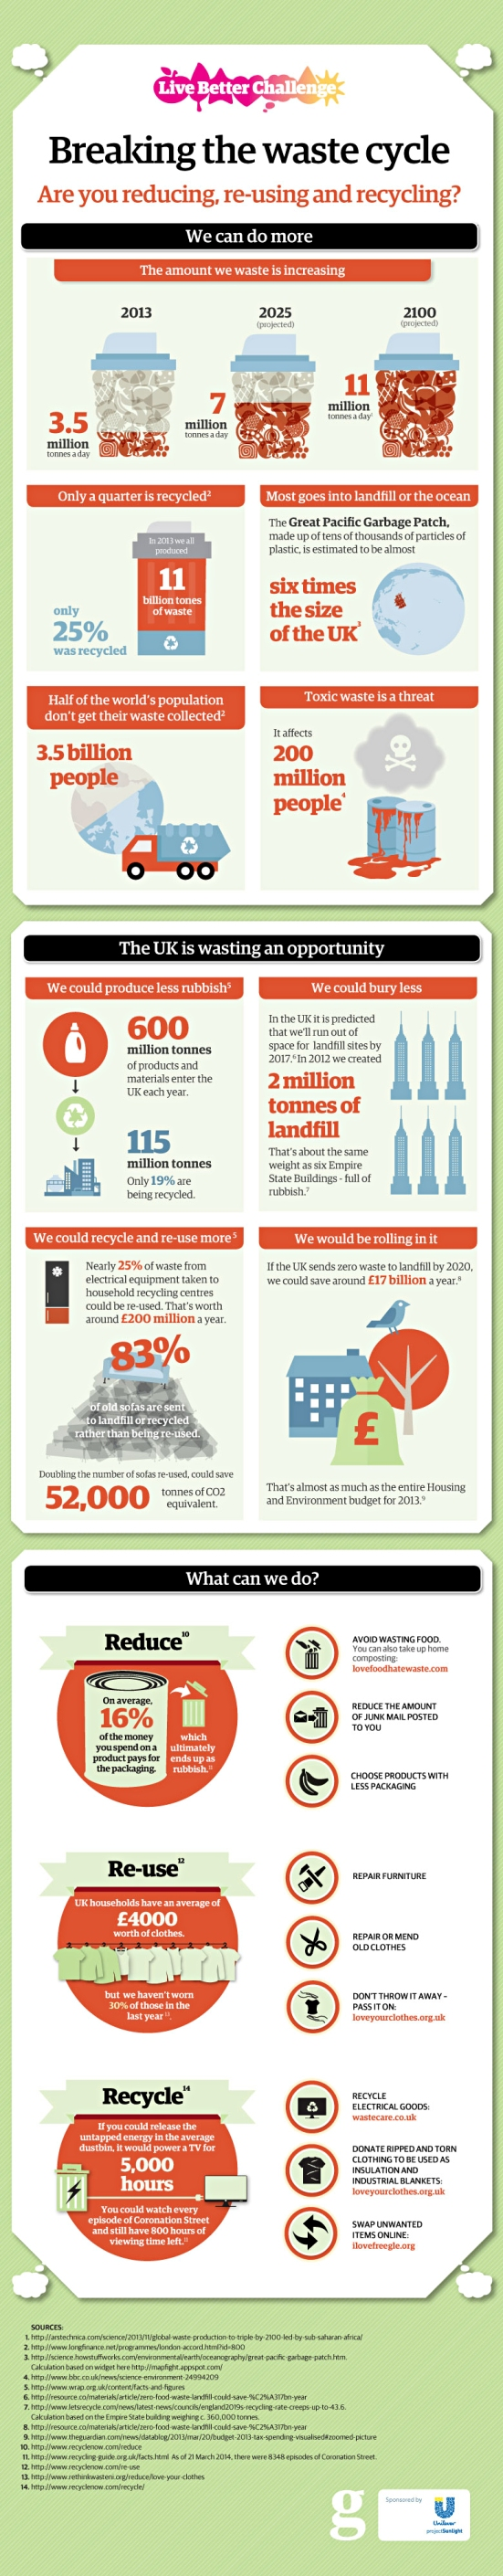 Live Better: Recycling infographic